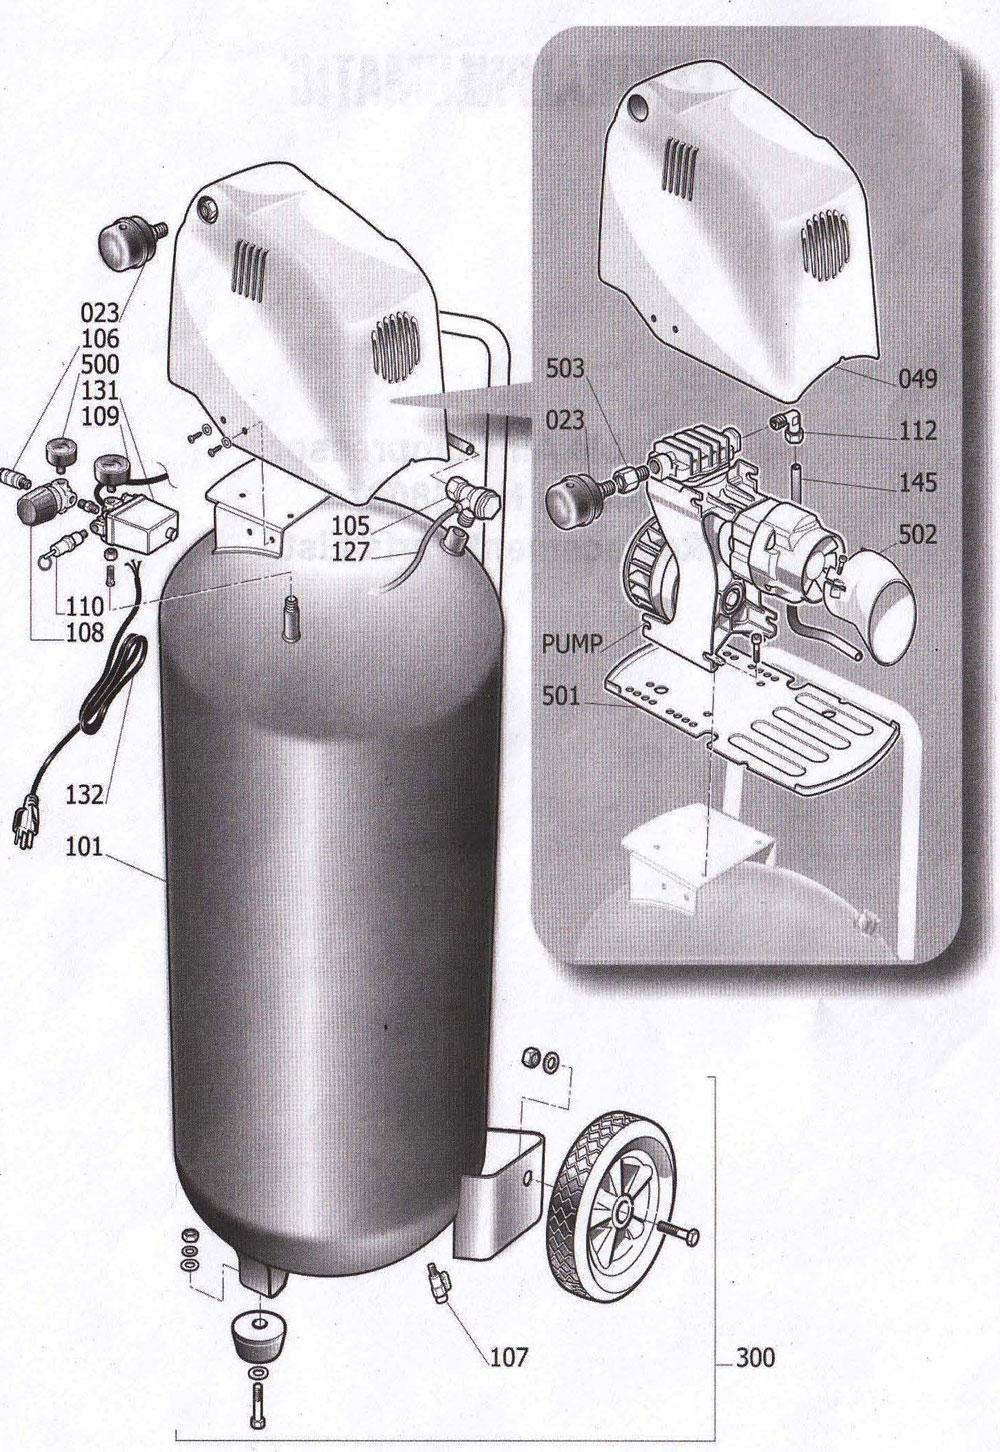 68067 - Portable Oil-free Air Compressor Parts schematic